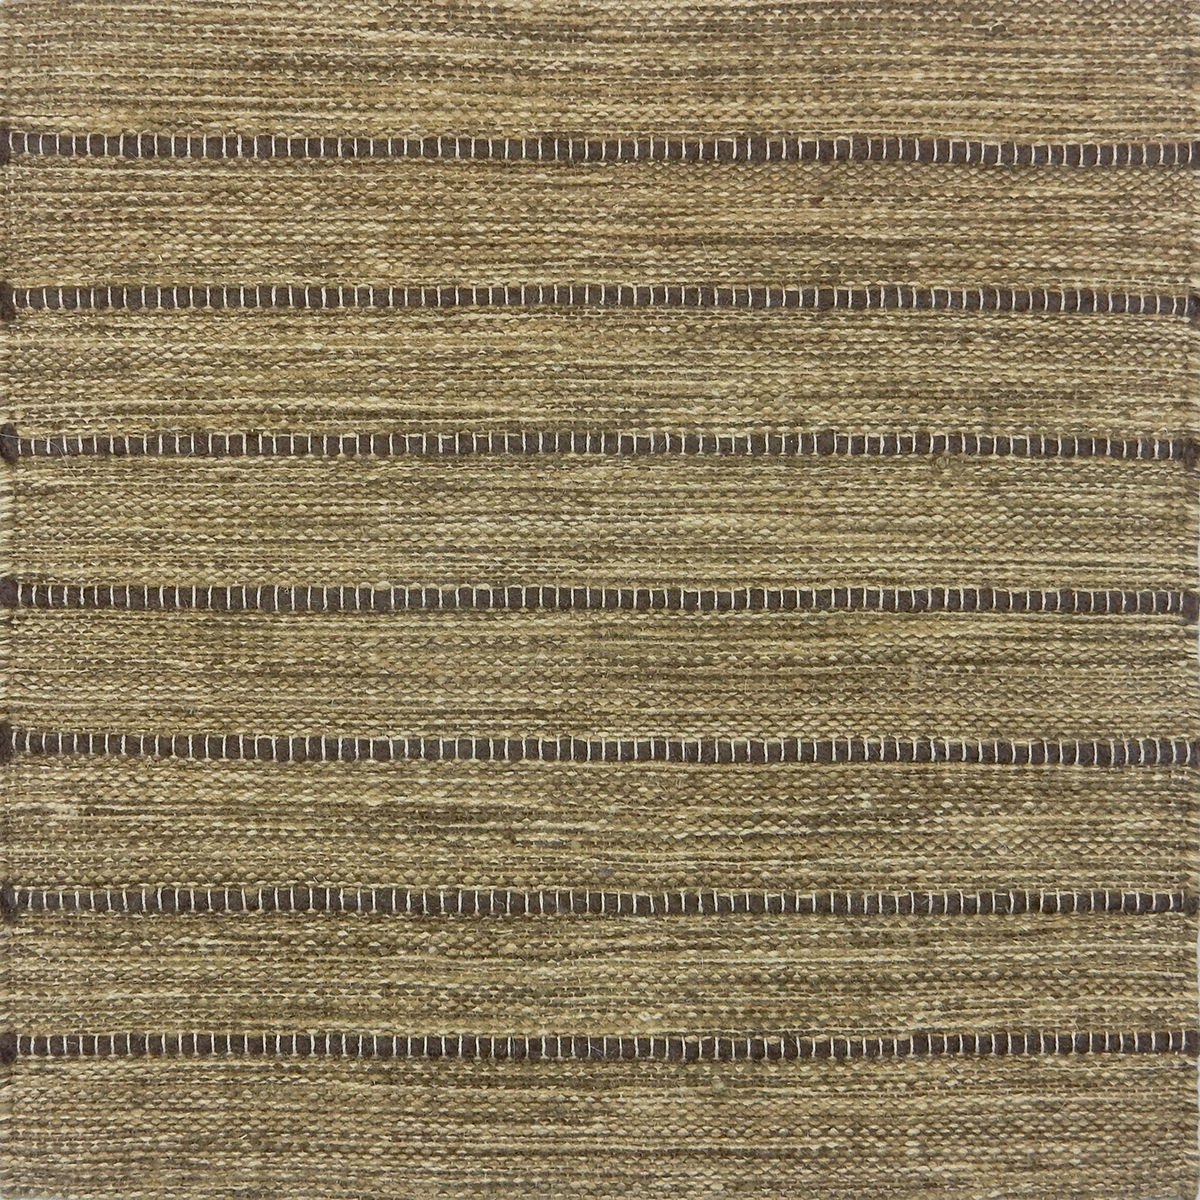 Lee Jofa Carpet Westgrove.Mocha CL-100761.MOCHA.0